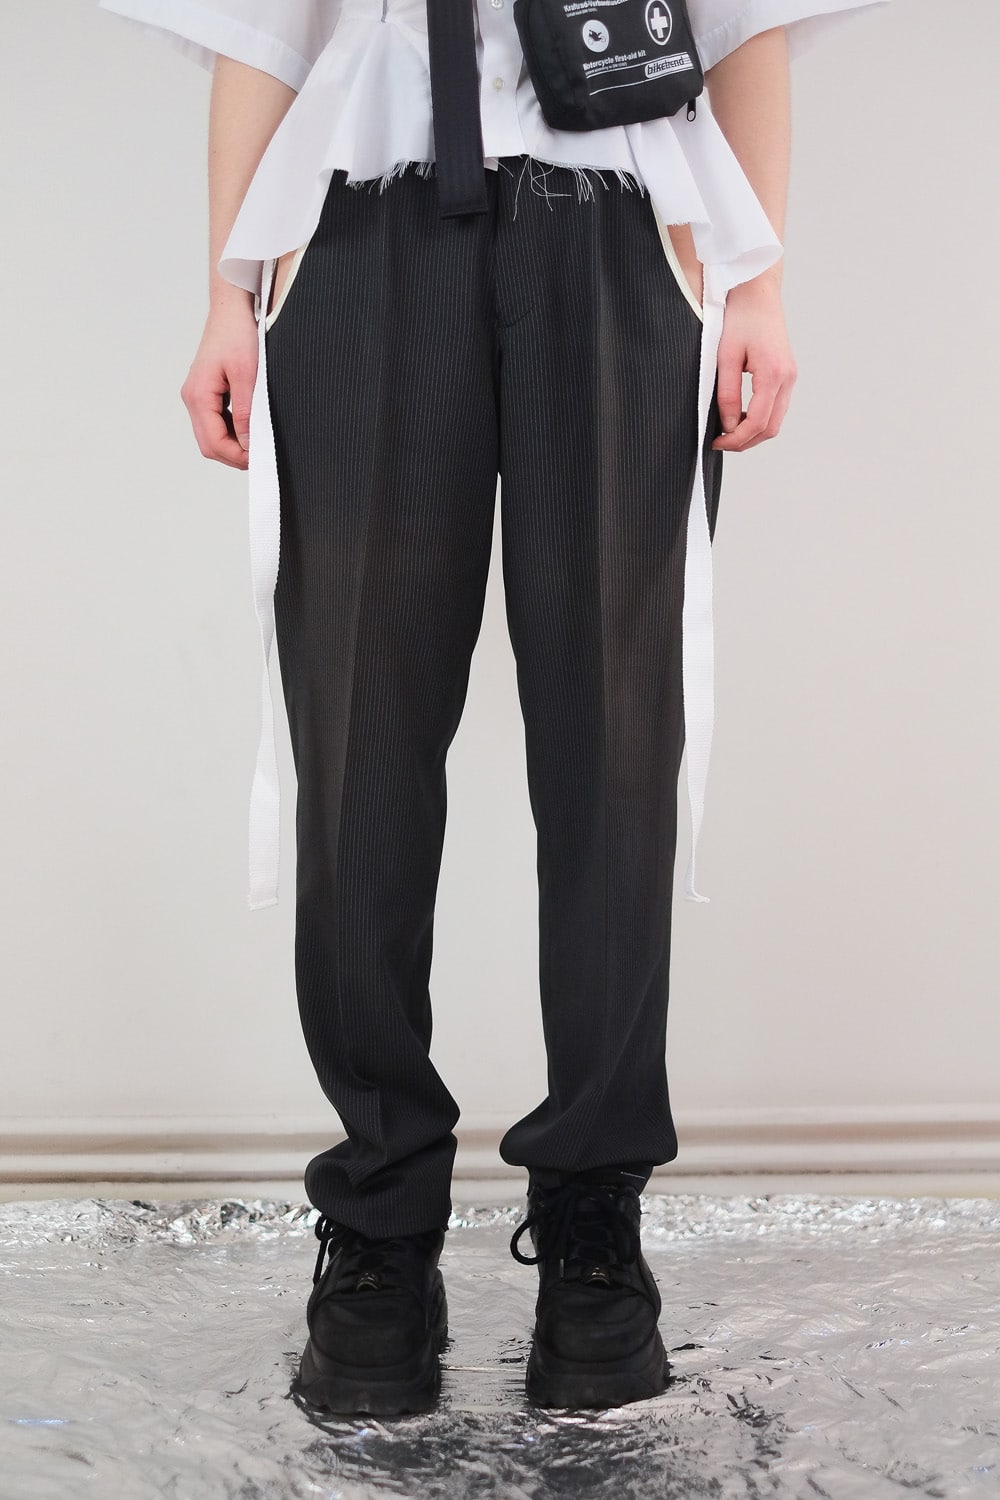 Reworked Cut Out Pants 5